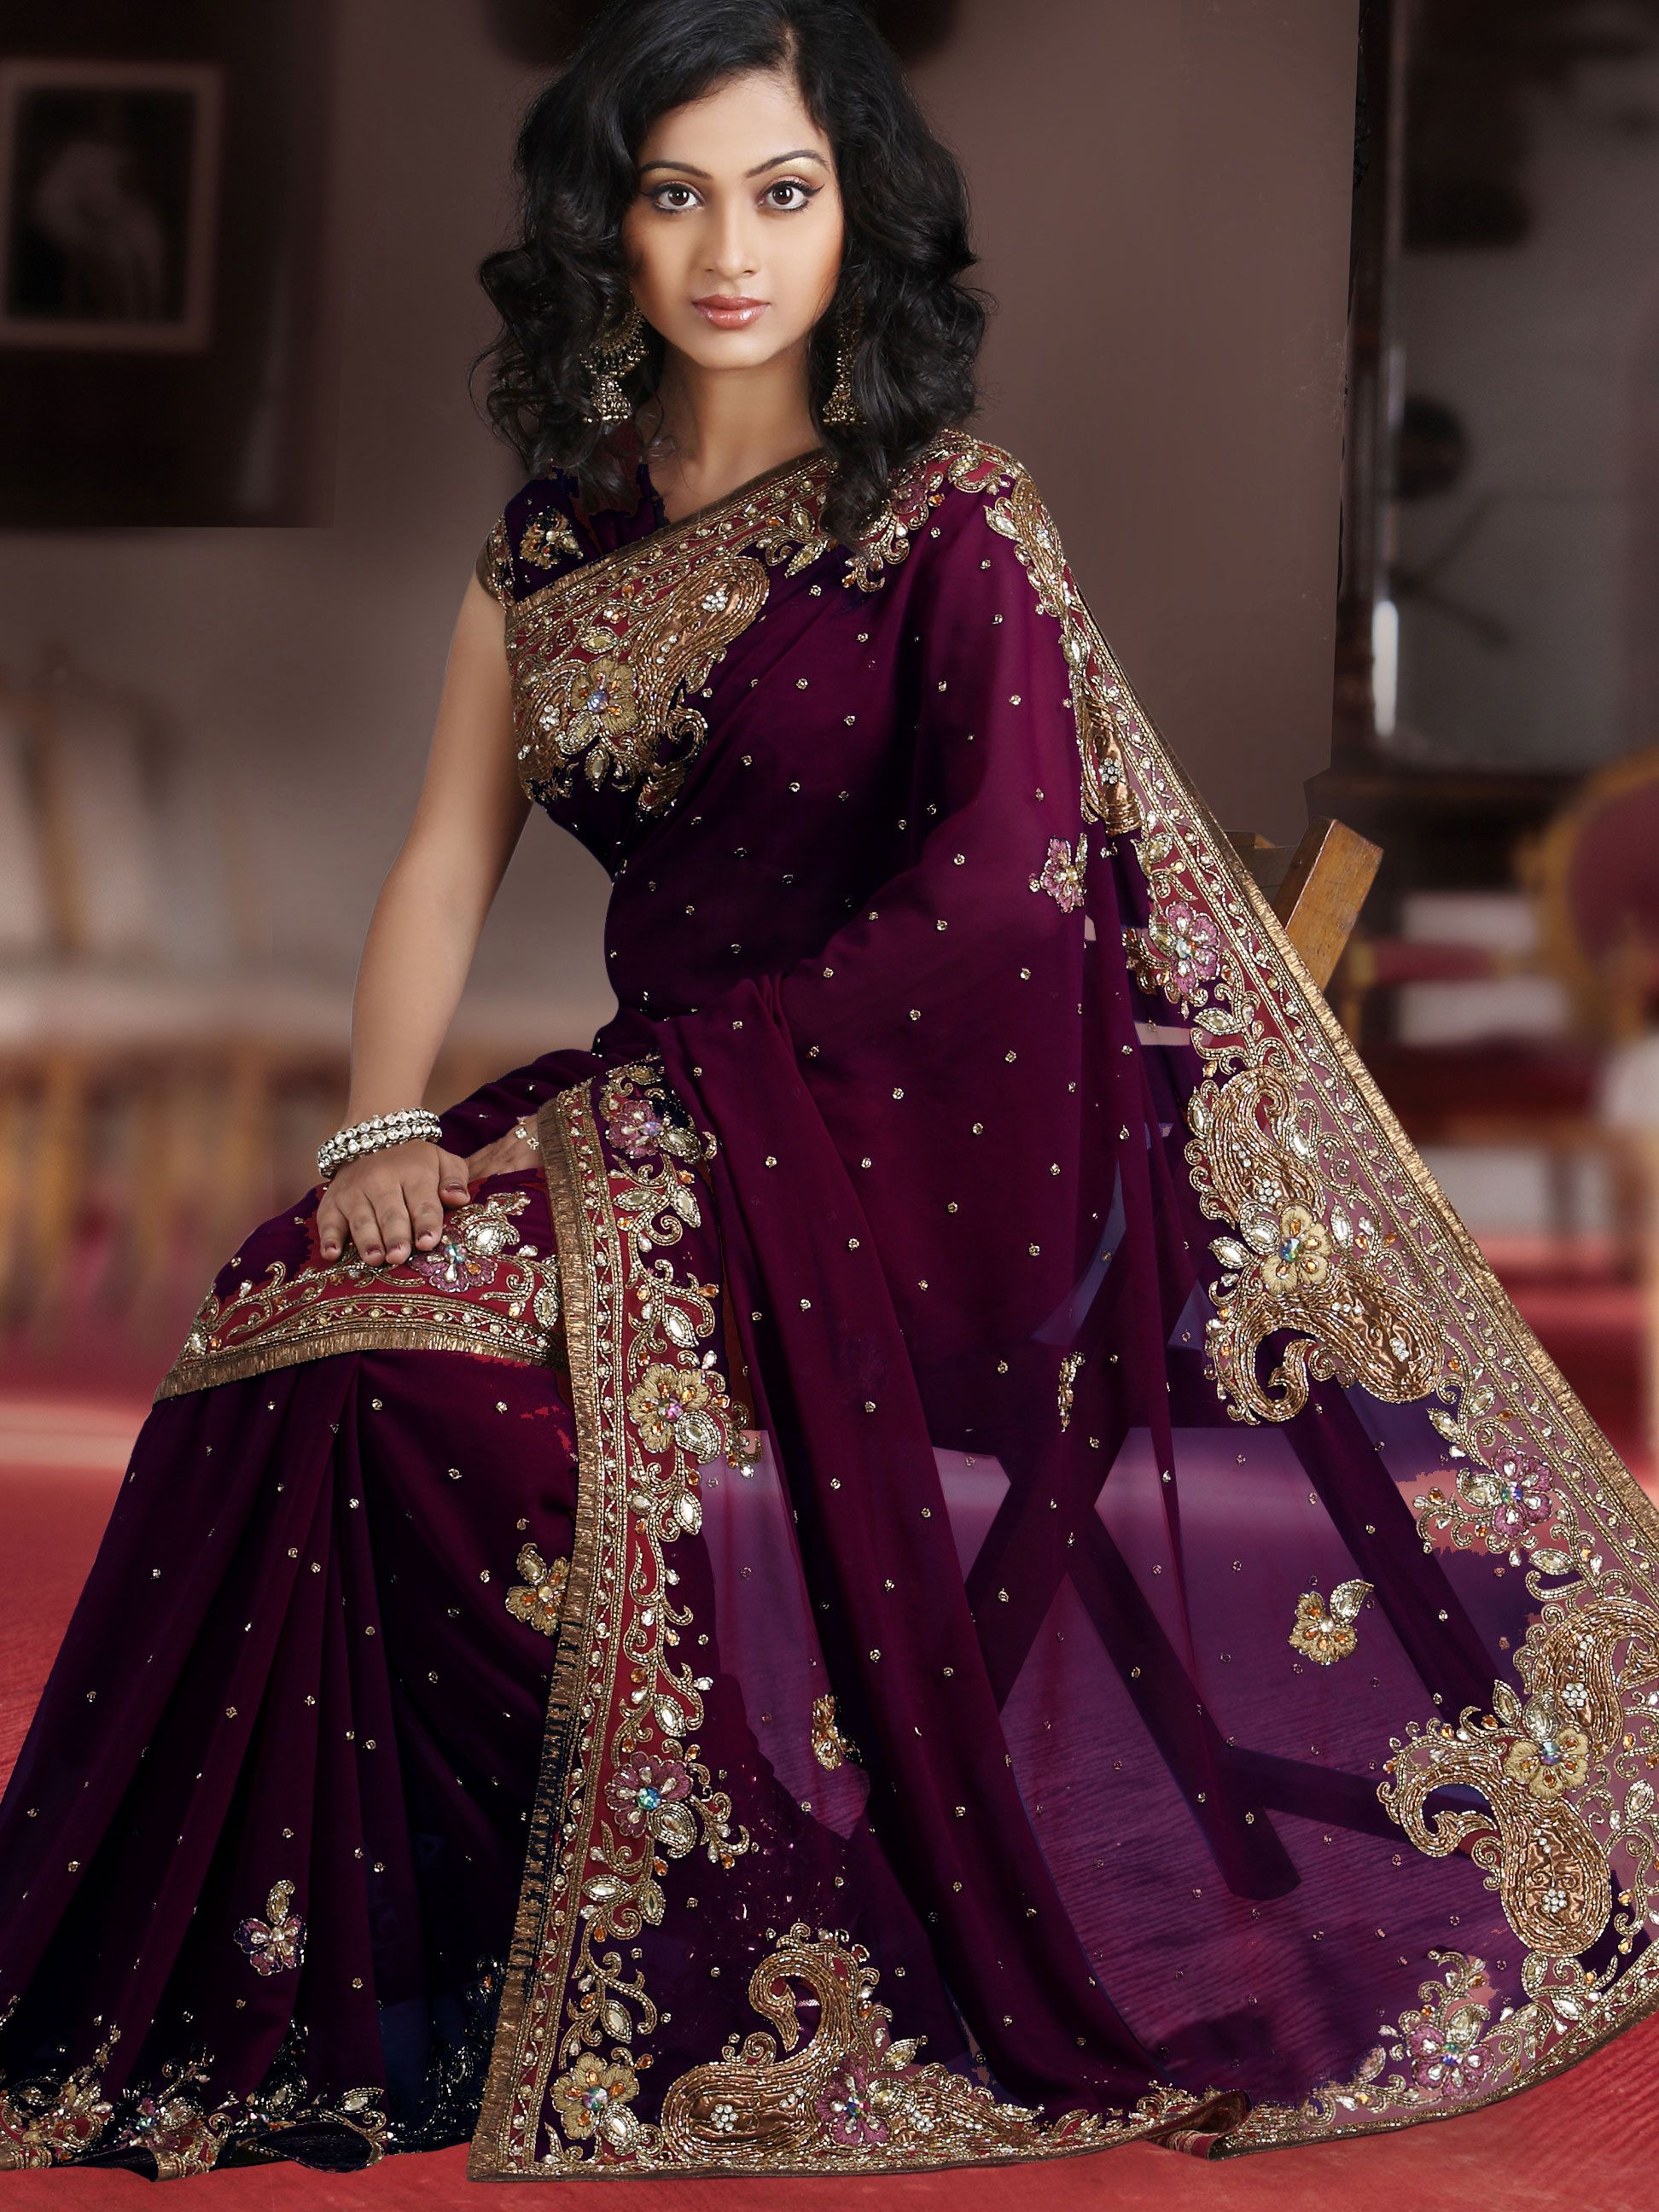 Wine Faux Georgette Saree with Blouse Online Shopping: SLSSK4800 ...